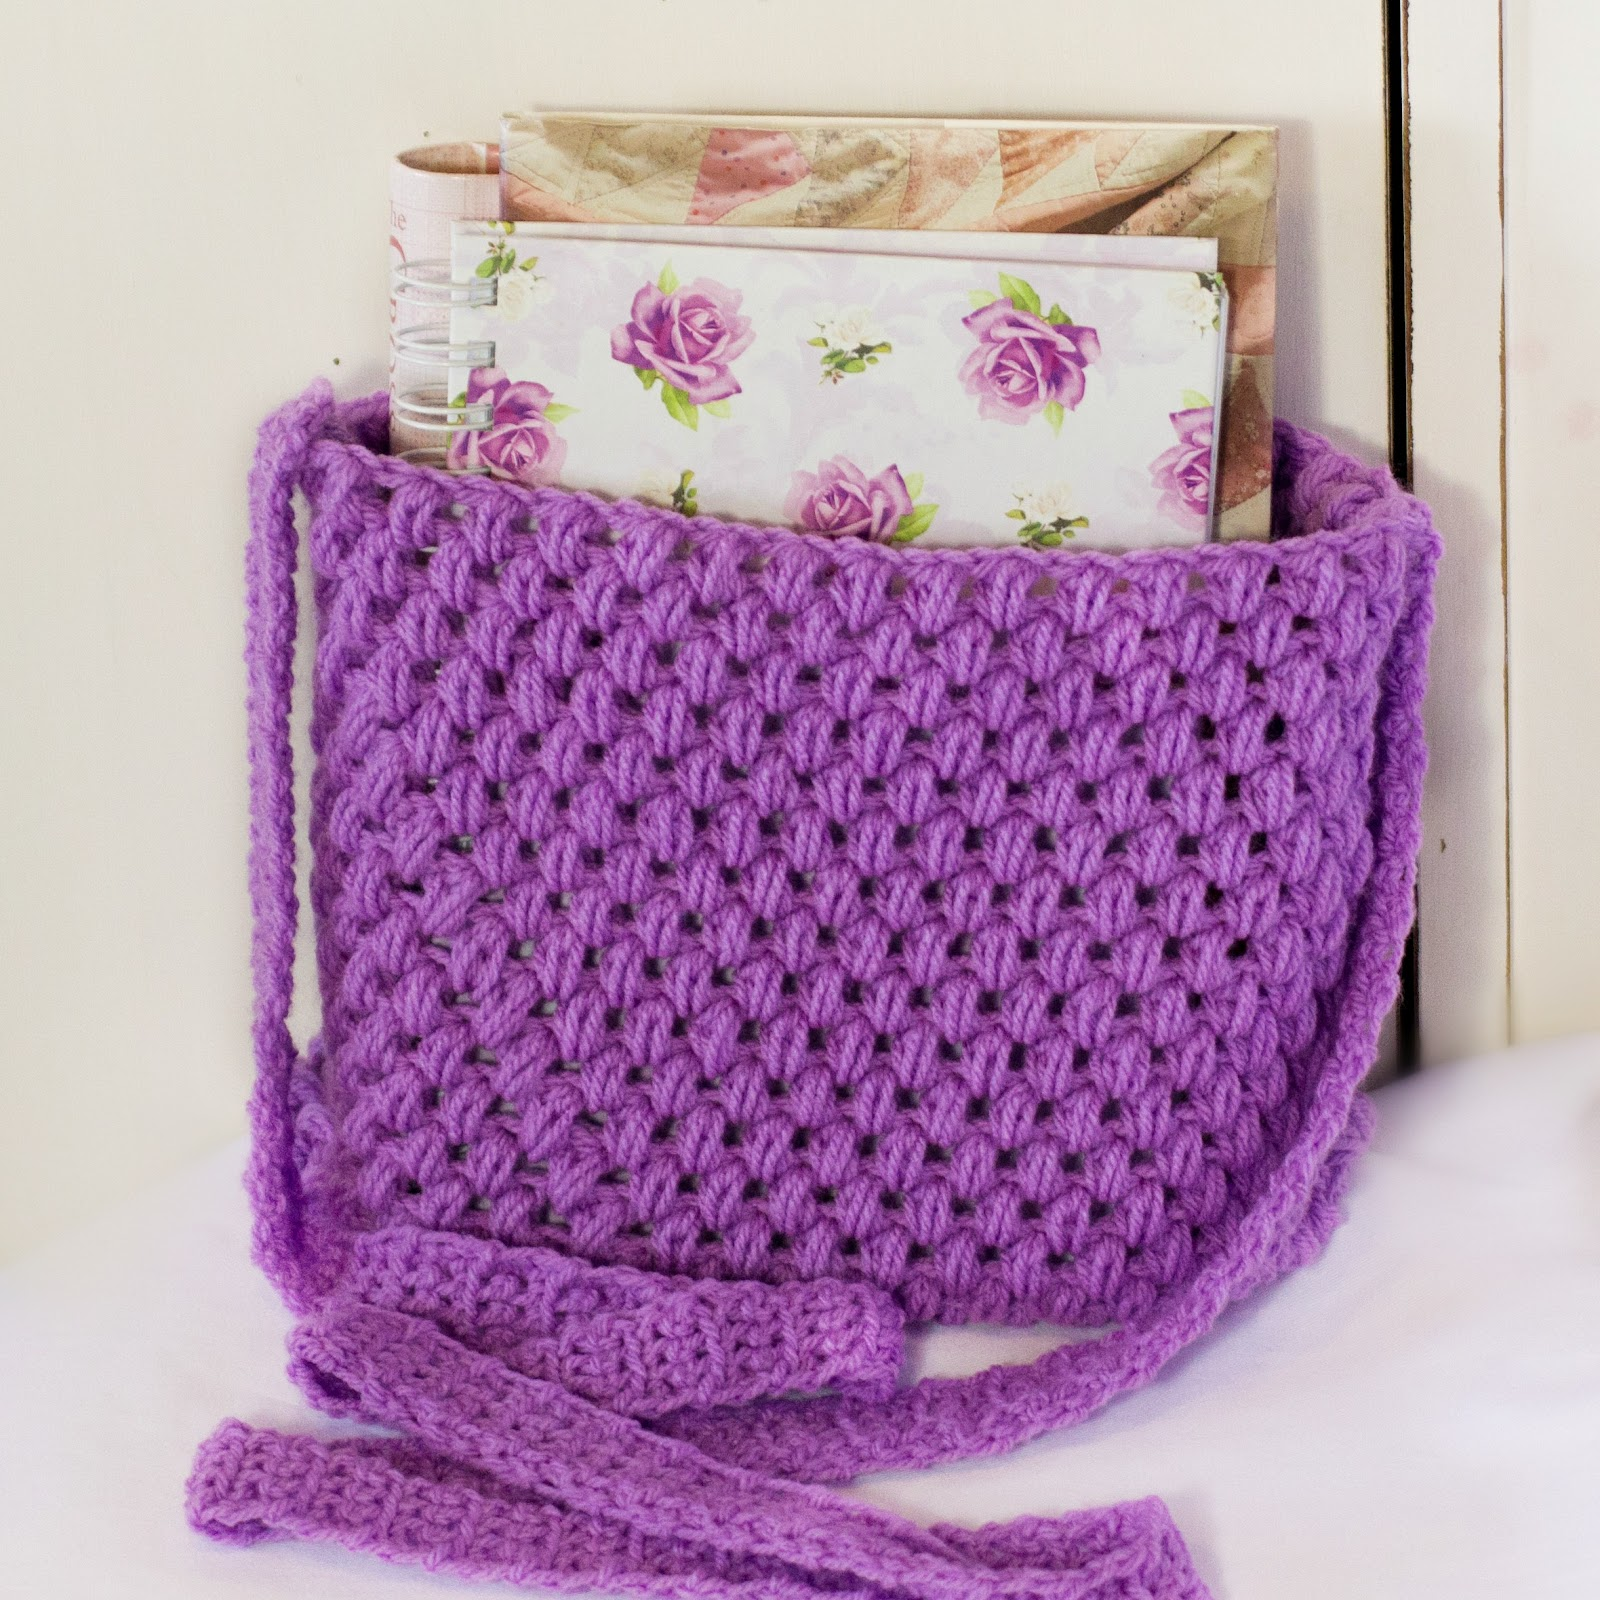 Crochet Designs For Bags : ... Craft, Crochet, Create: Out and About ~ Easy Tote Bag Crochet Pattern